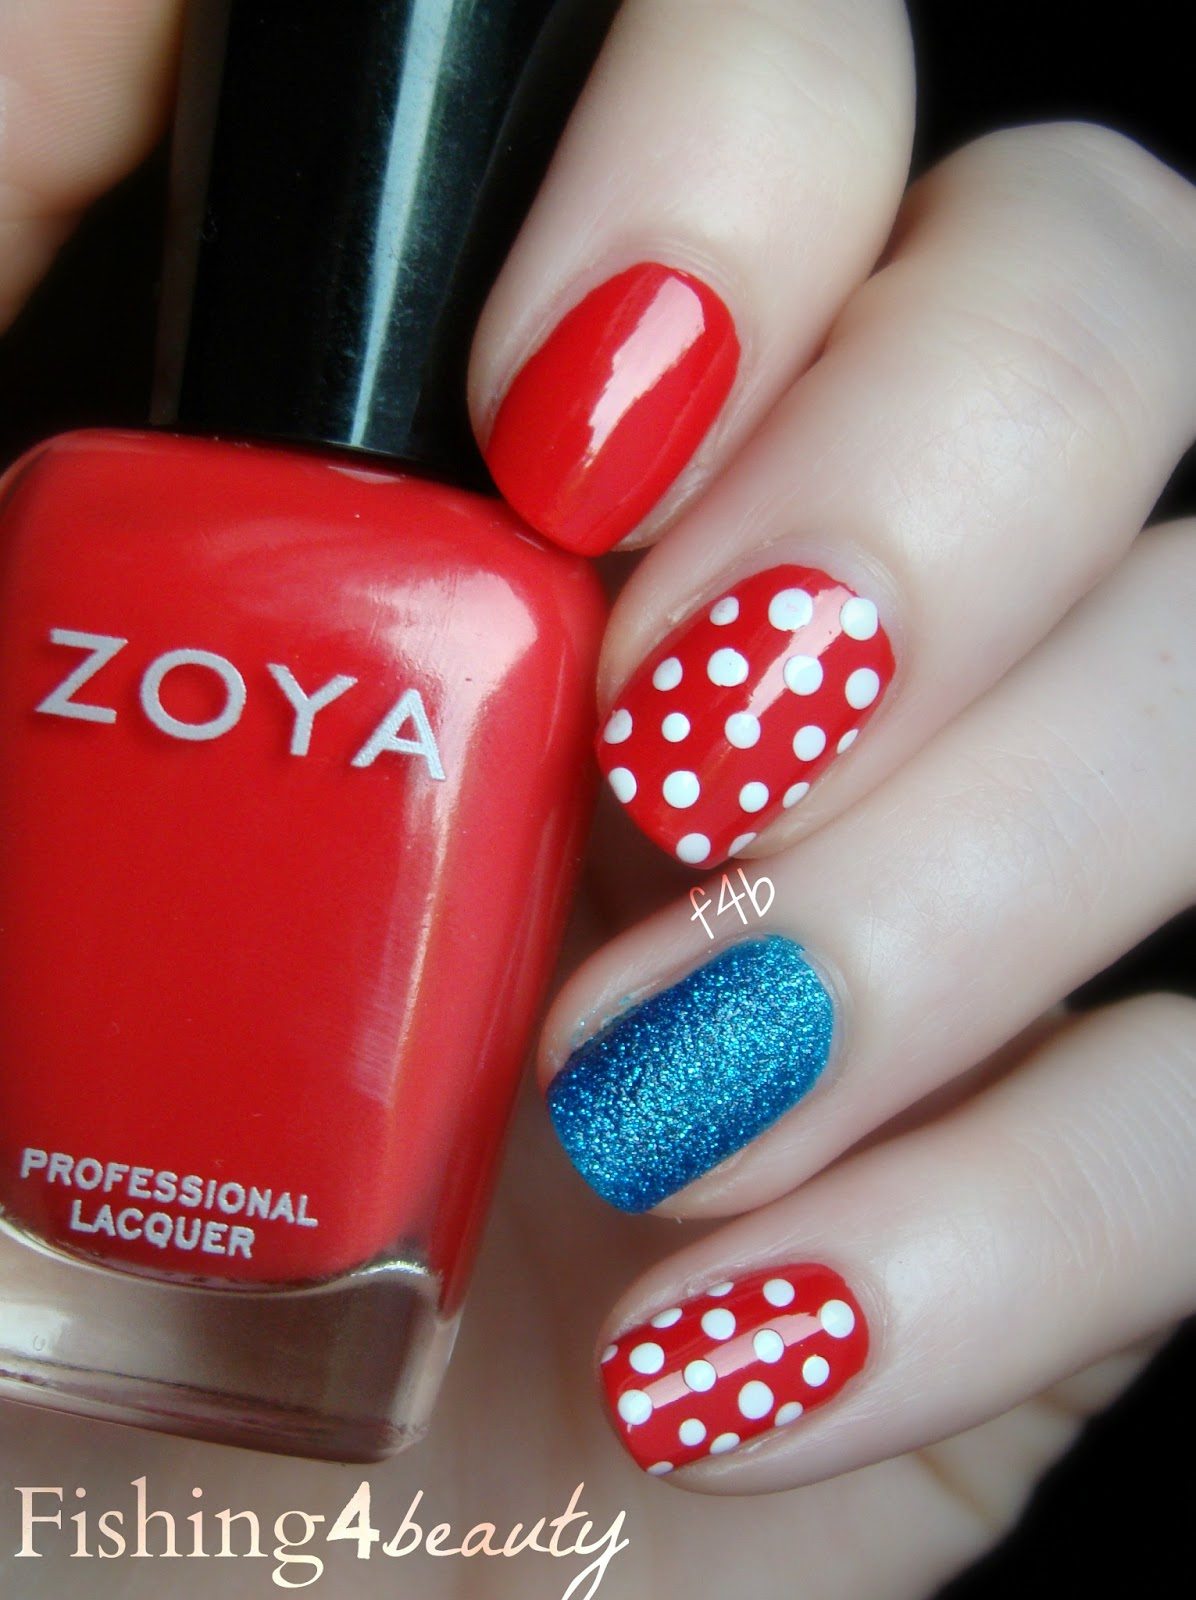 Fun Fourth Of July Nail Art With Zoya Nail Polish! | Zoya Nail ...